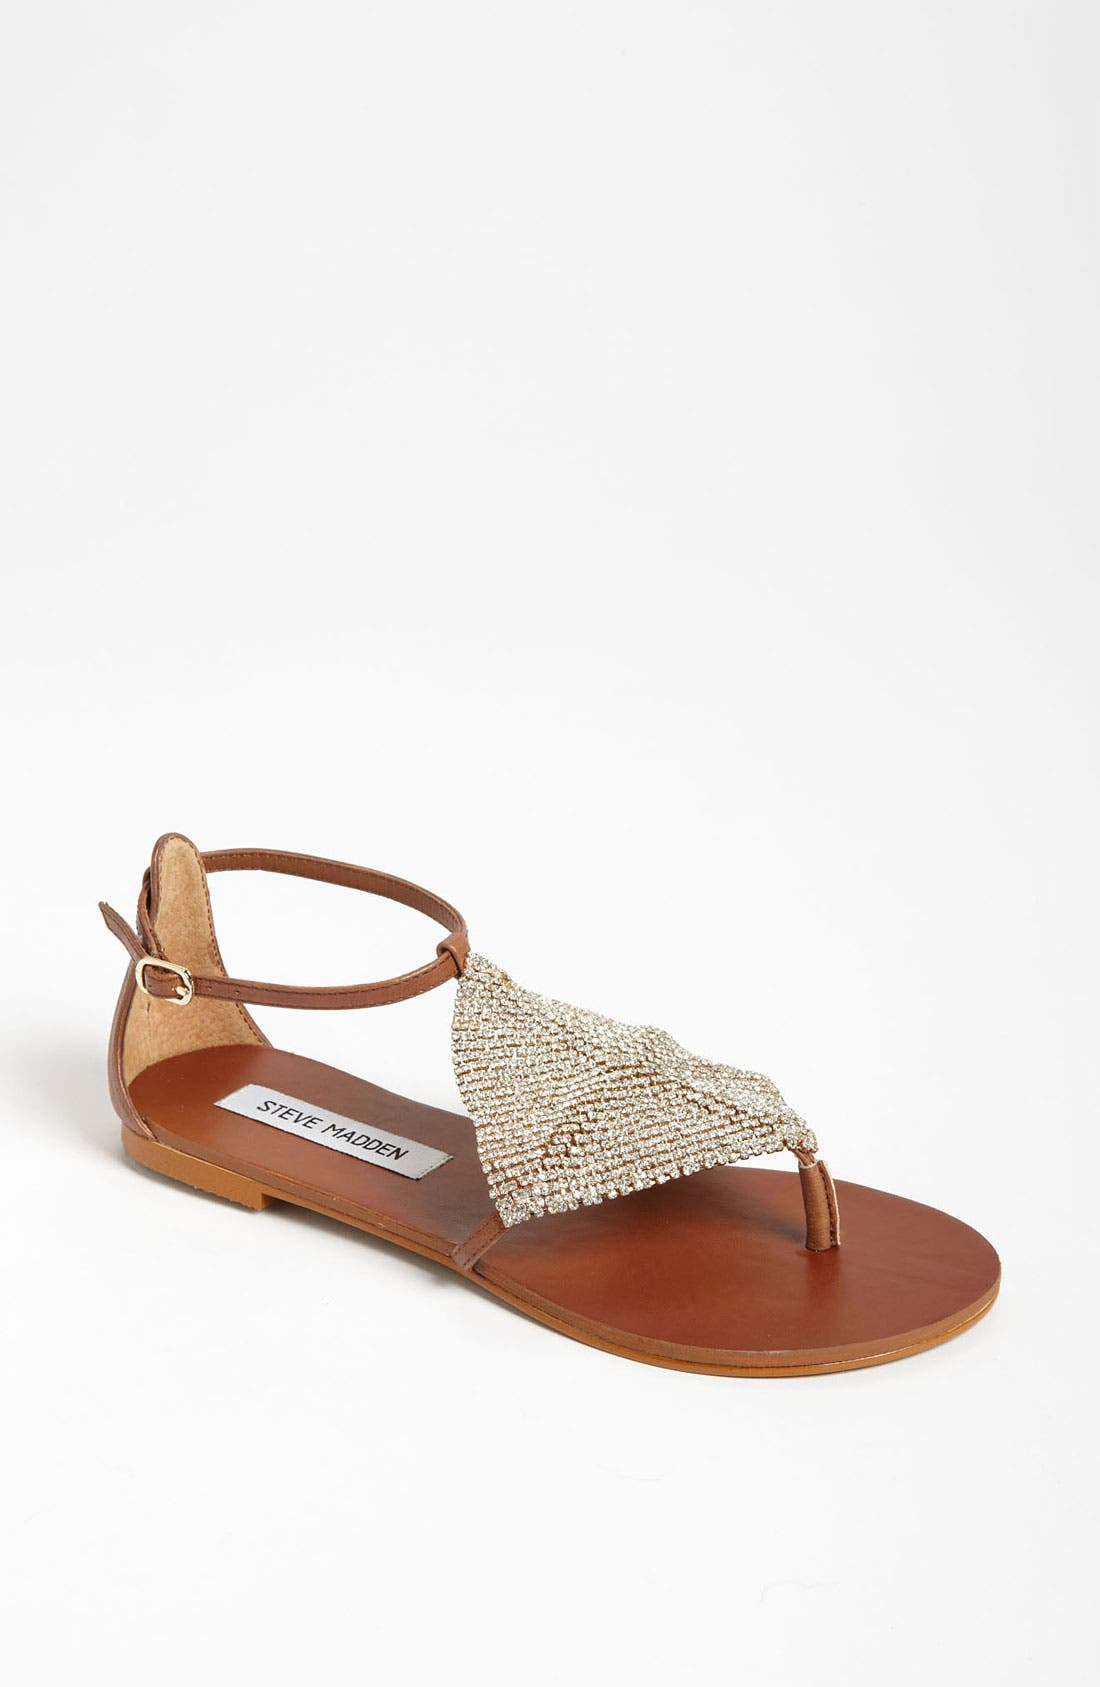 Alternate Image 1 Selected - Steve Madden 'Shineyy' Sandal